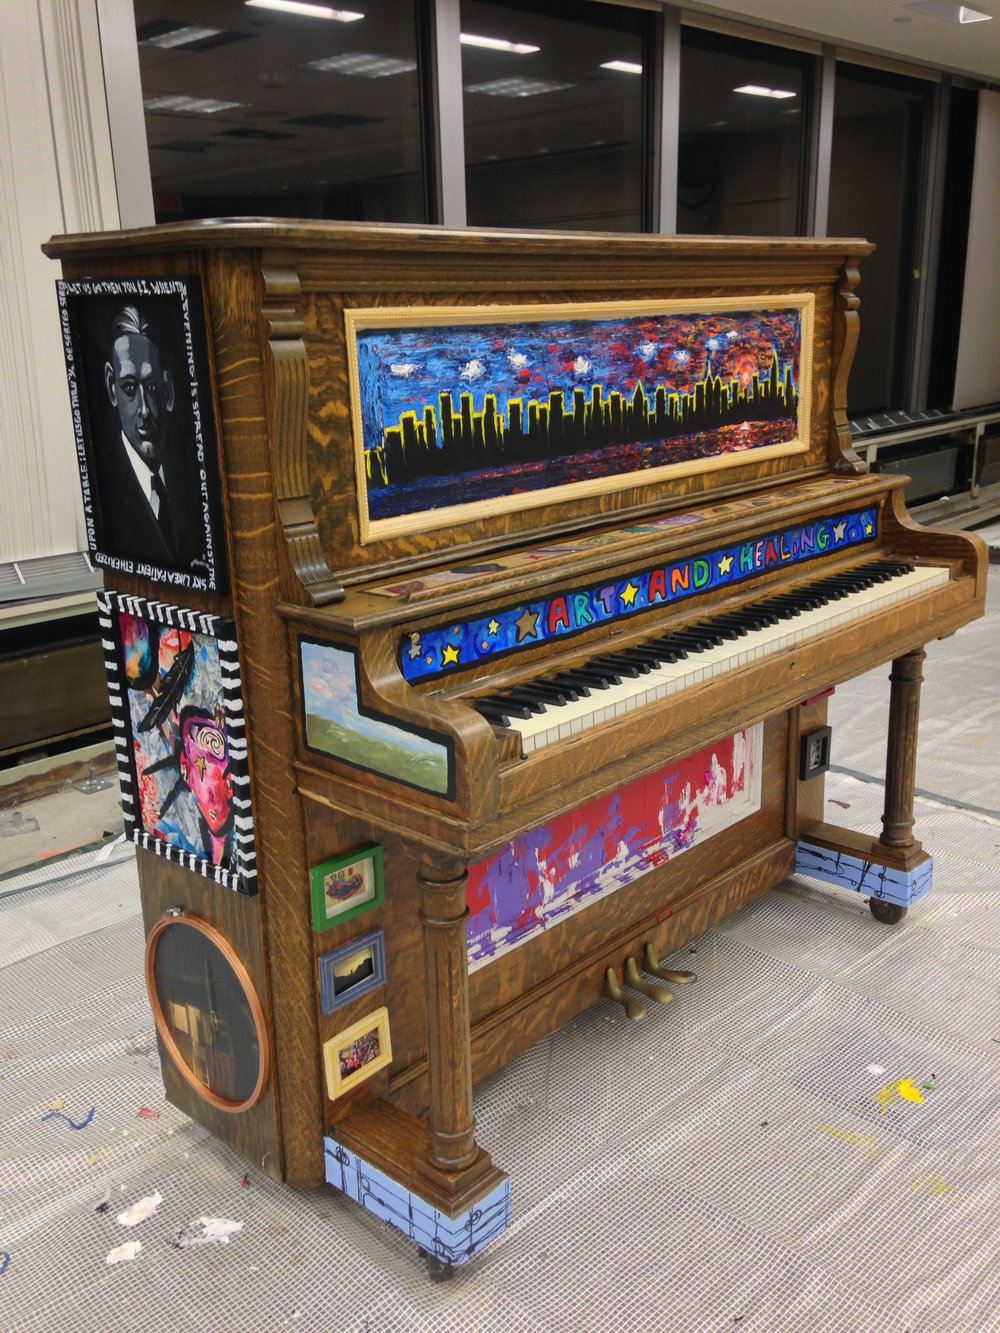 - The Foundation for Art and Healing's Sing for Hope Piano (New York, NY)